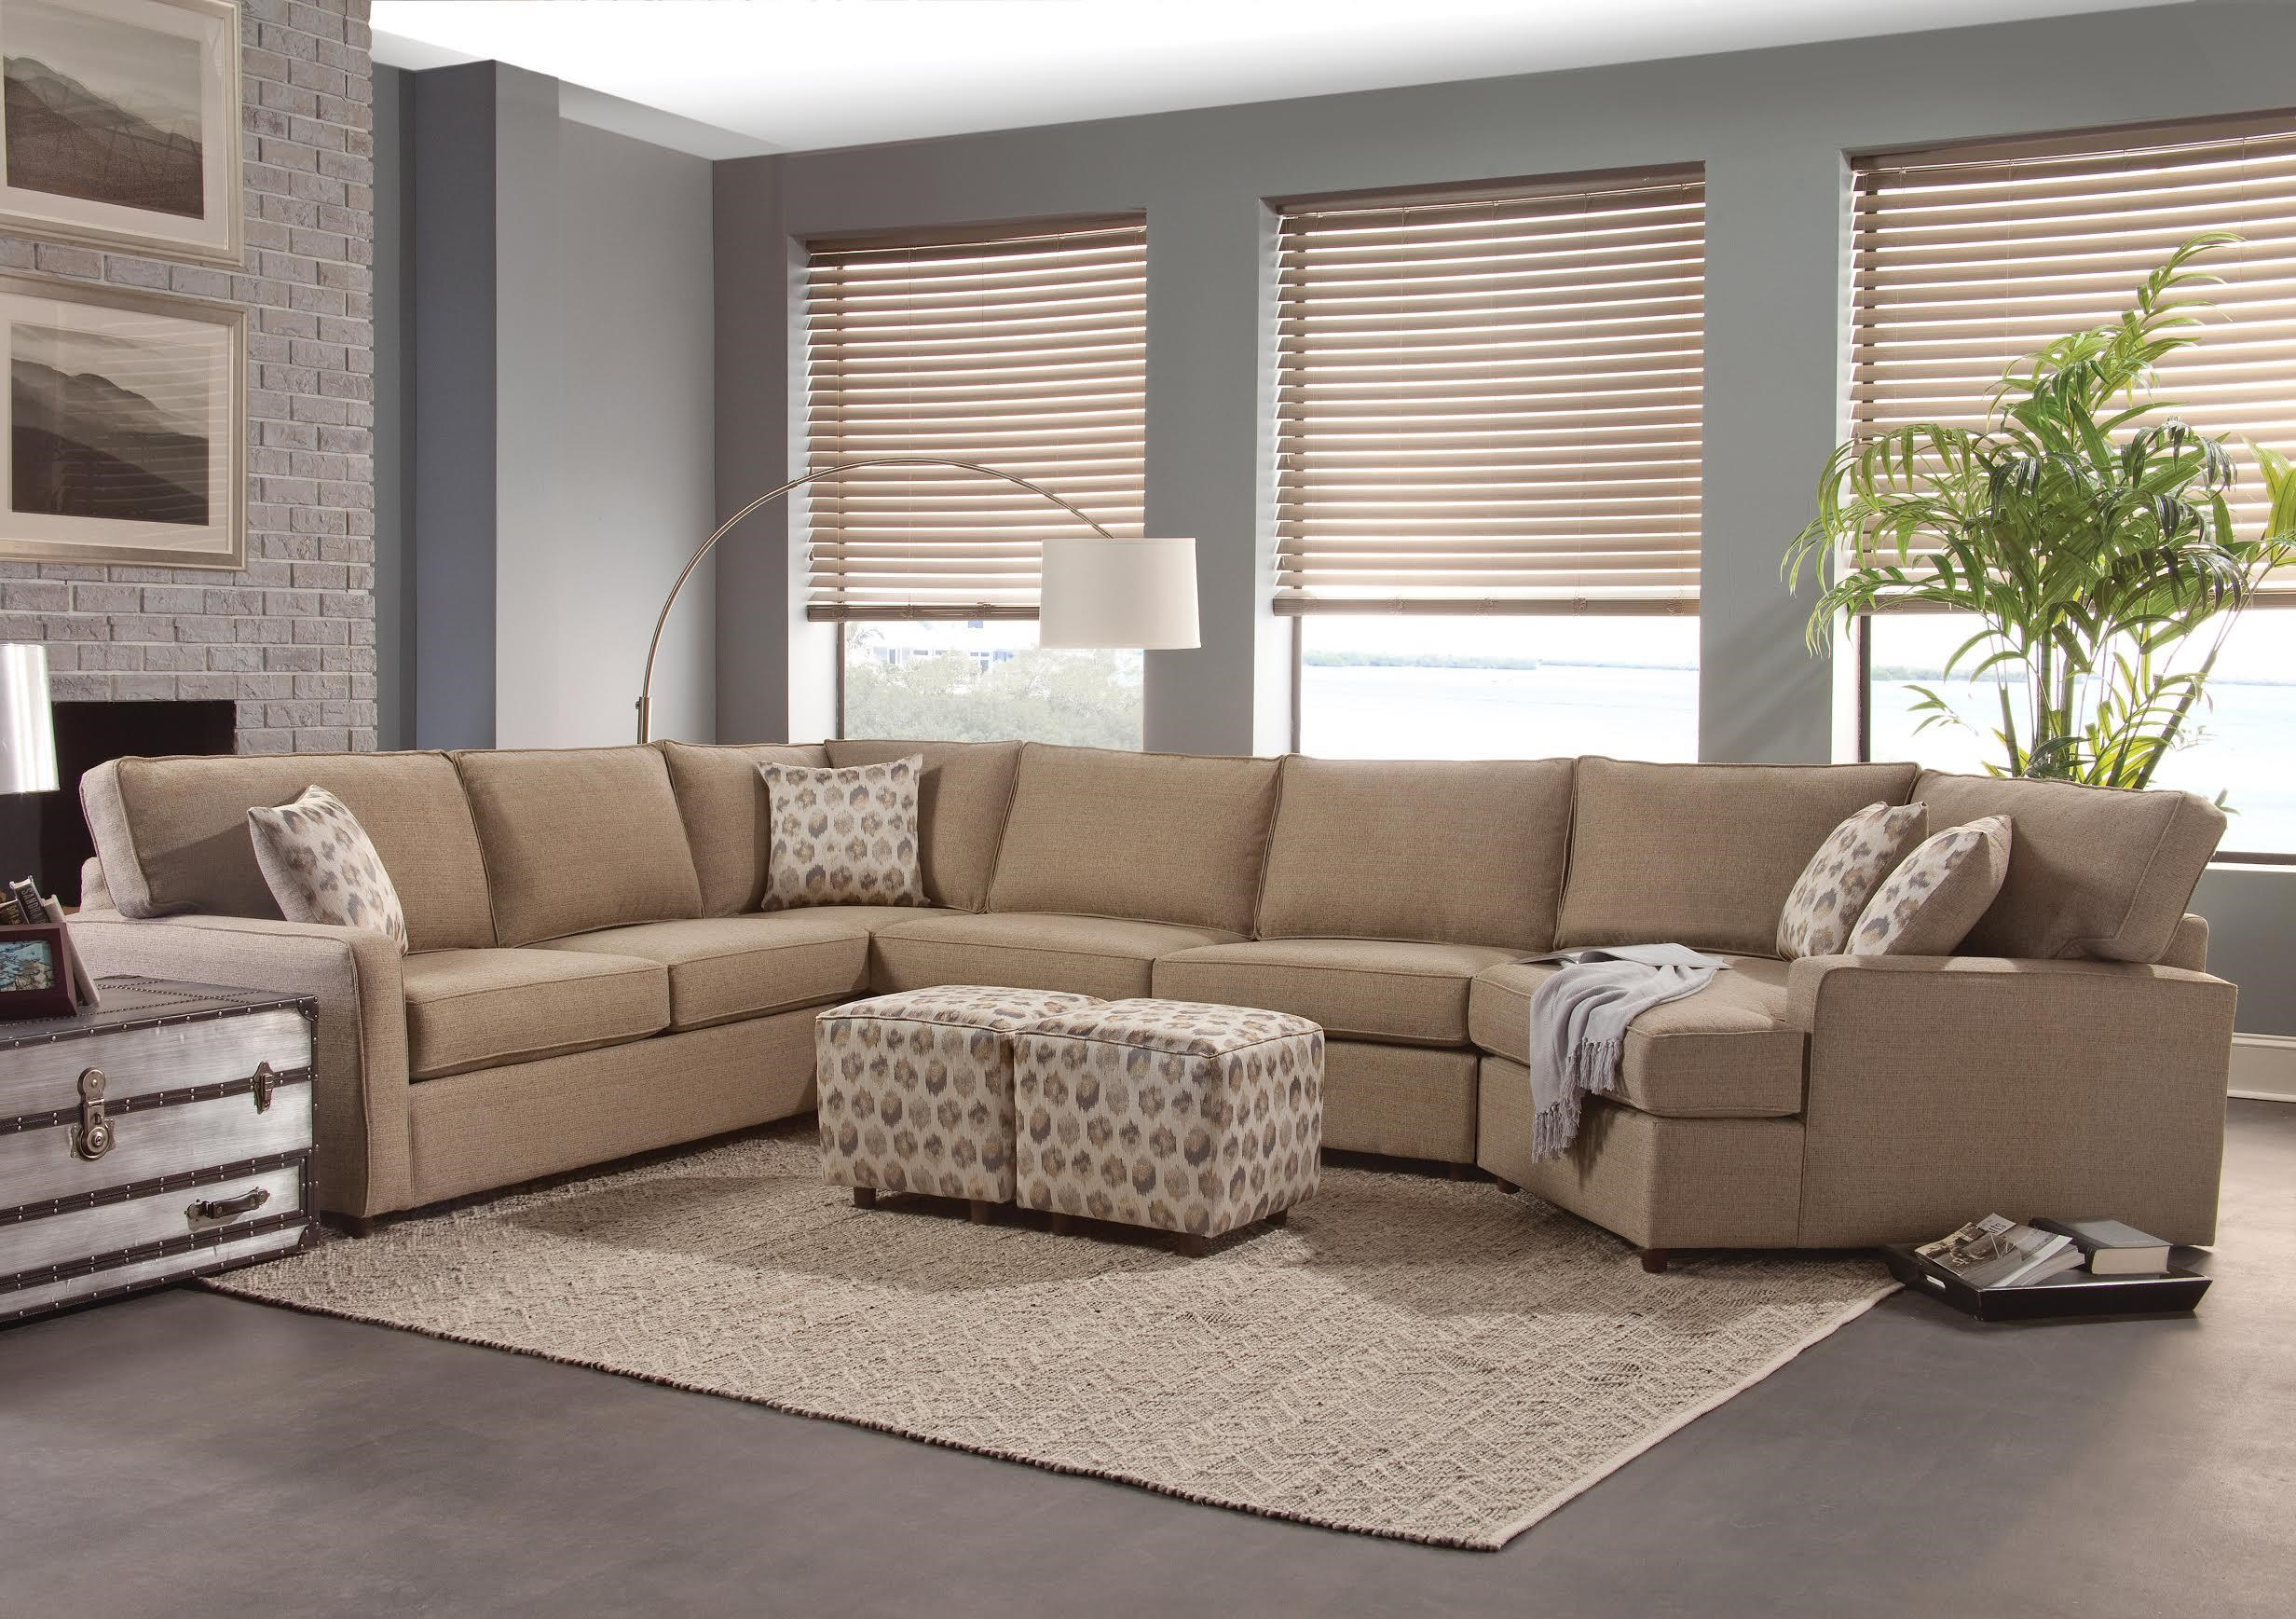 Charmant Eliot Transitional Sectional Sofa By Benchmark Upholstery